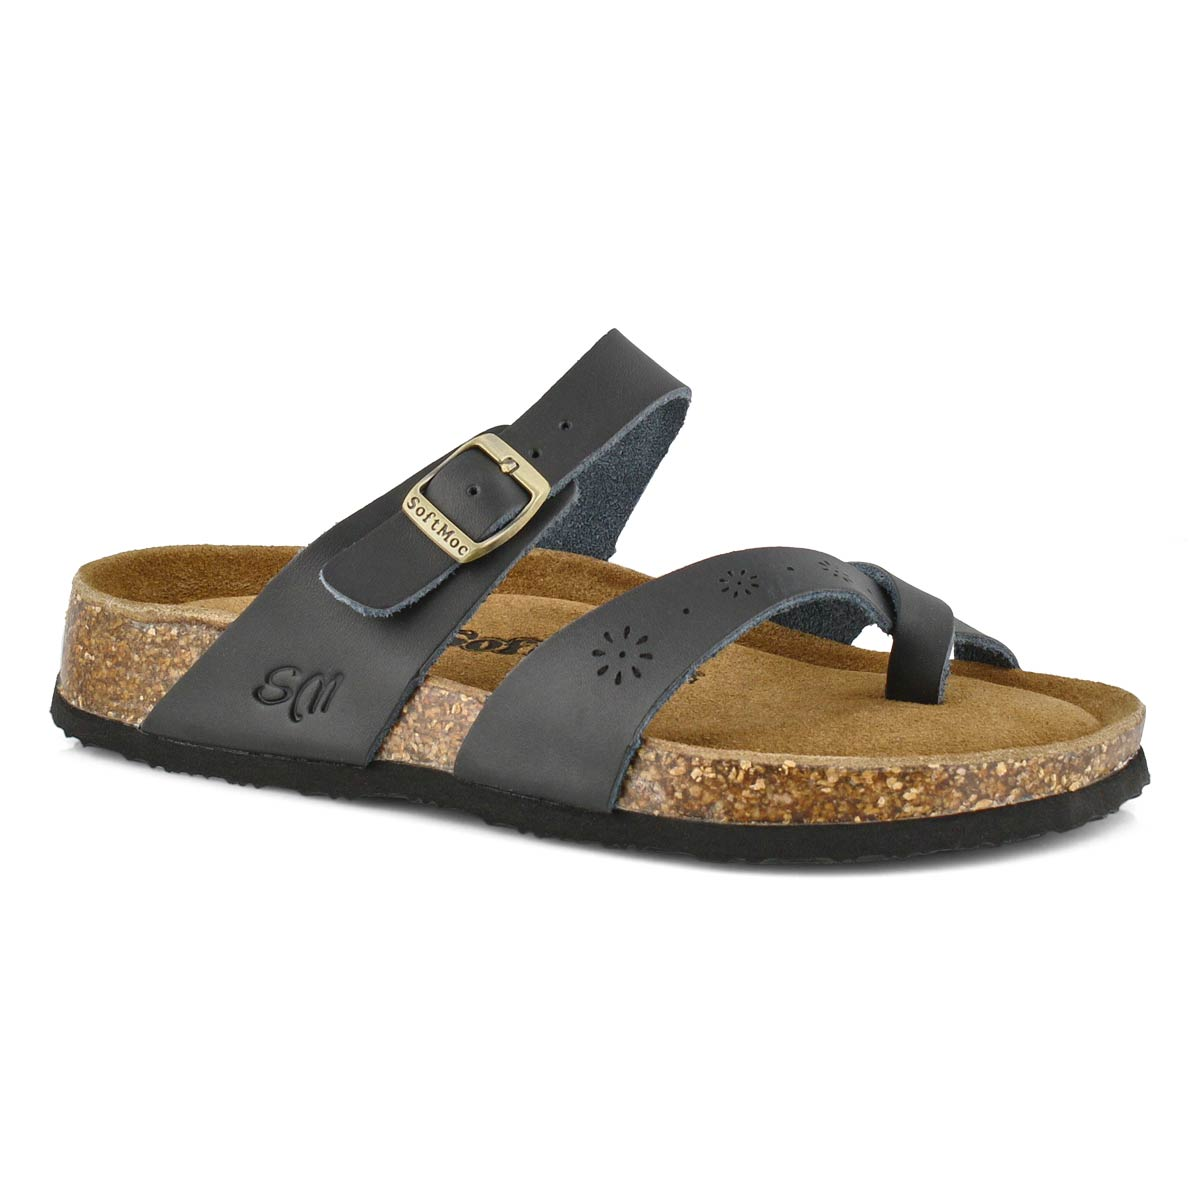 Women's ALICIA 5 black perforated leather sandal